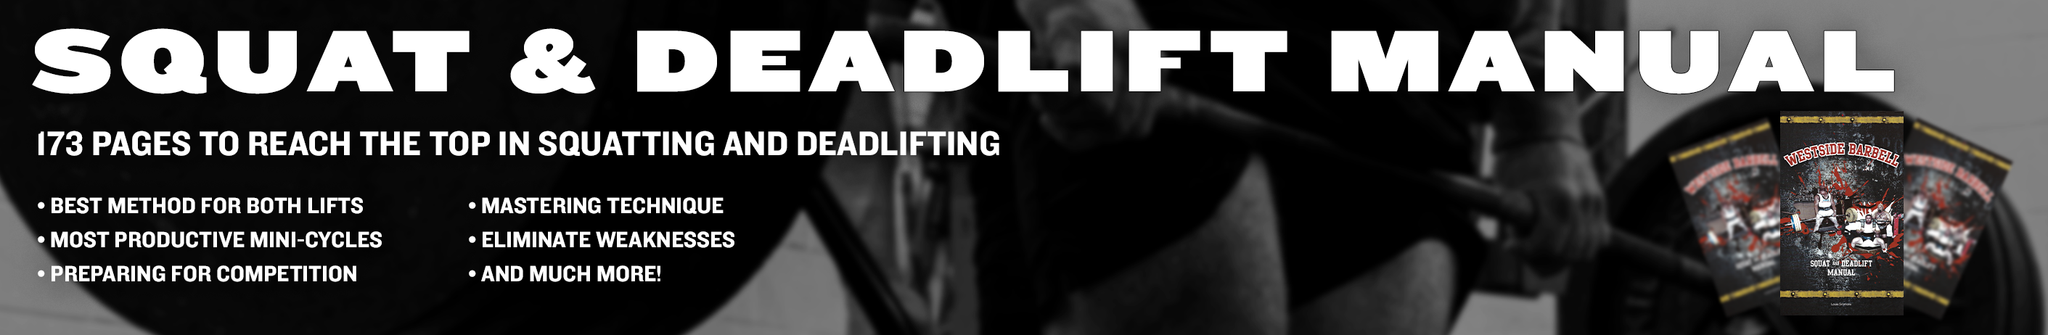 Squat and Deadlift Manual